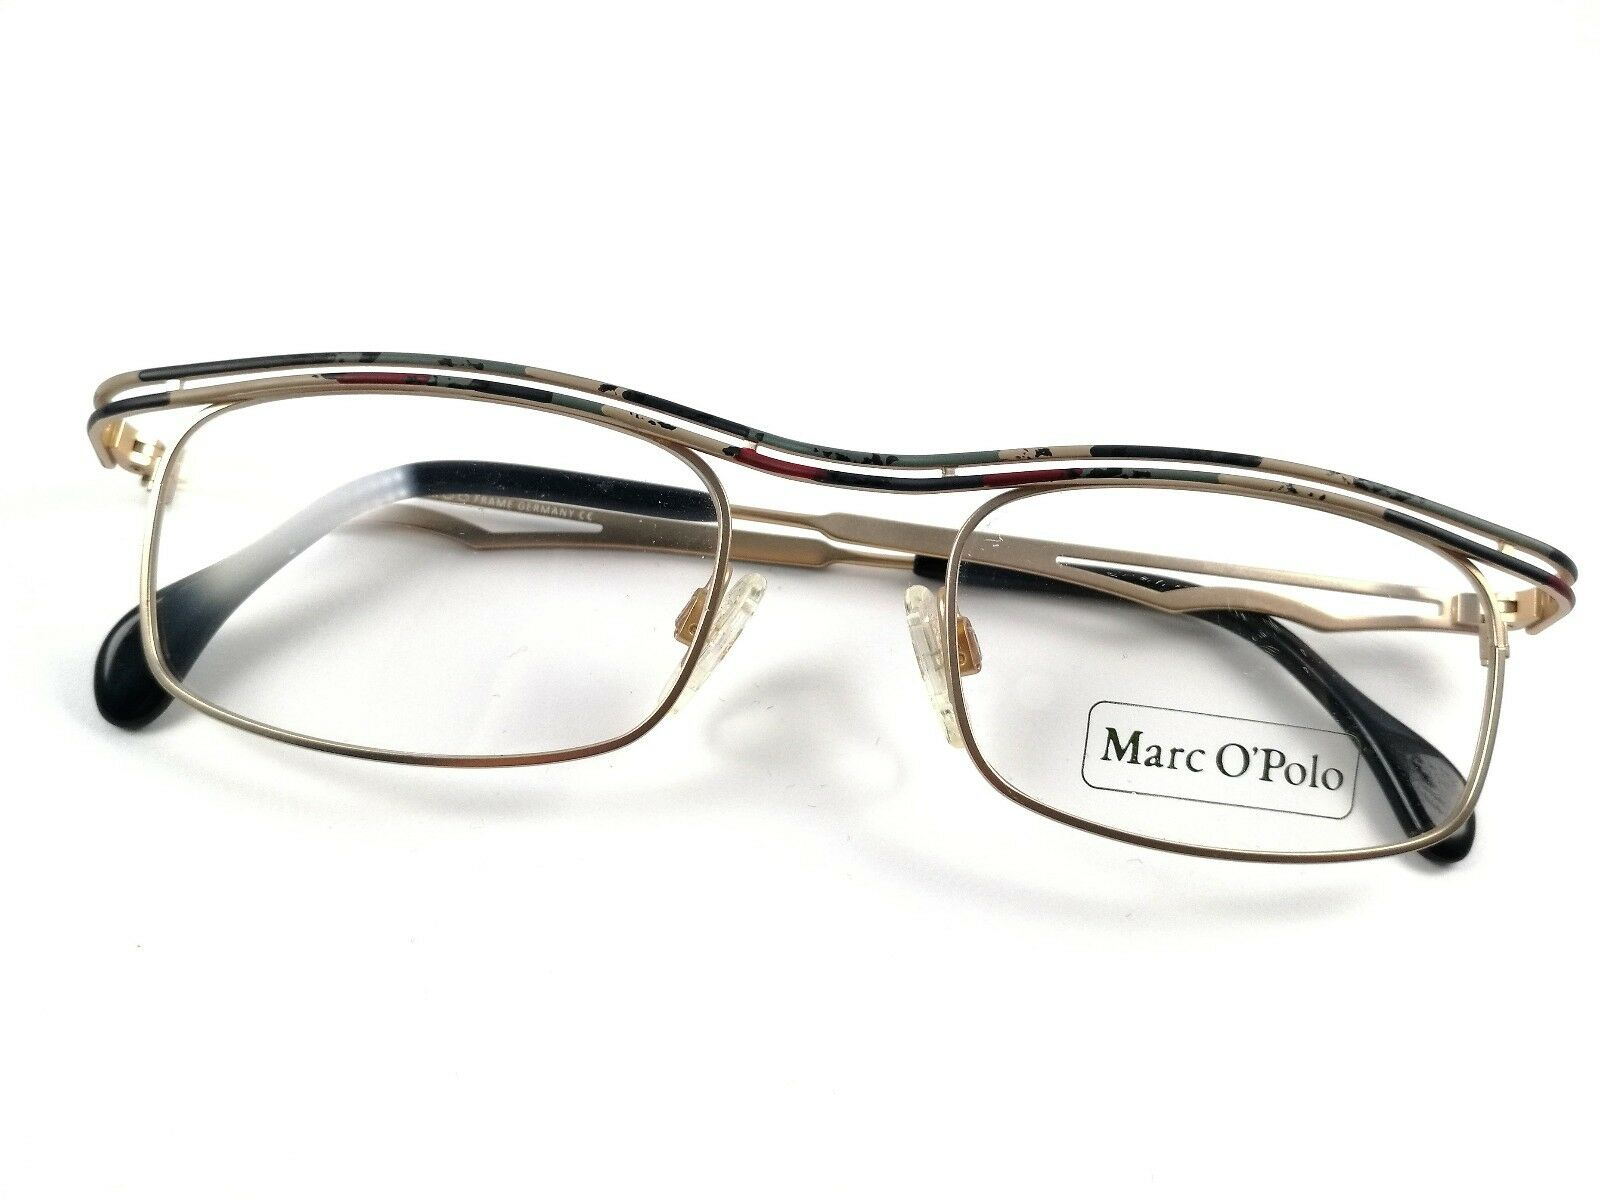 MARC O\'POLO BY METZLER Brille 3406-252 Eye Frame Elegant Modern ...